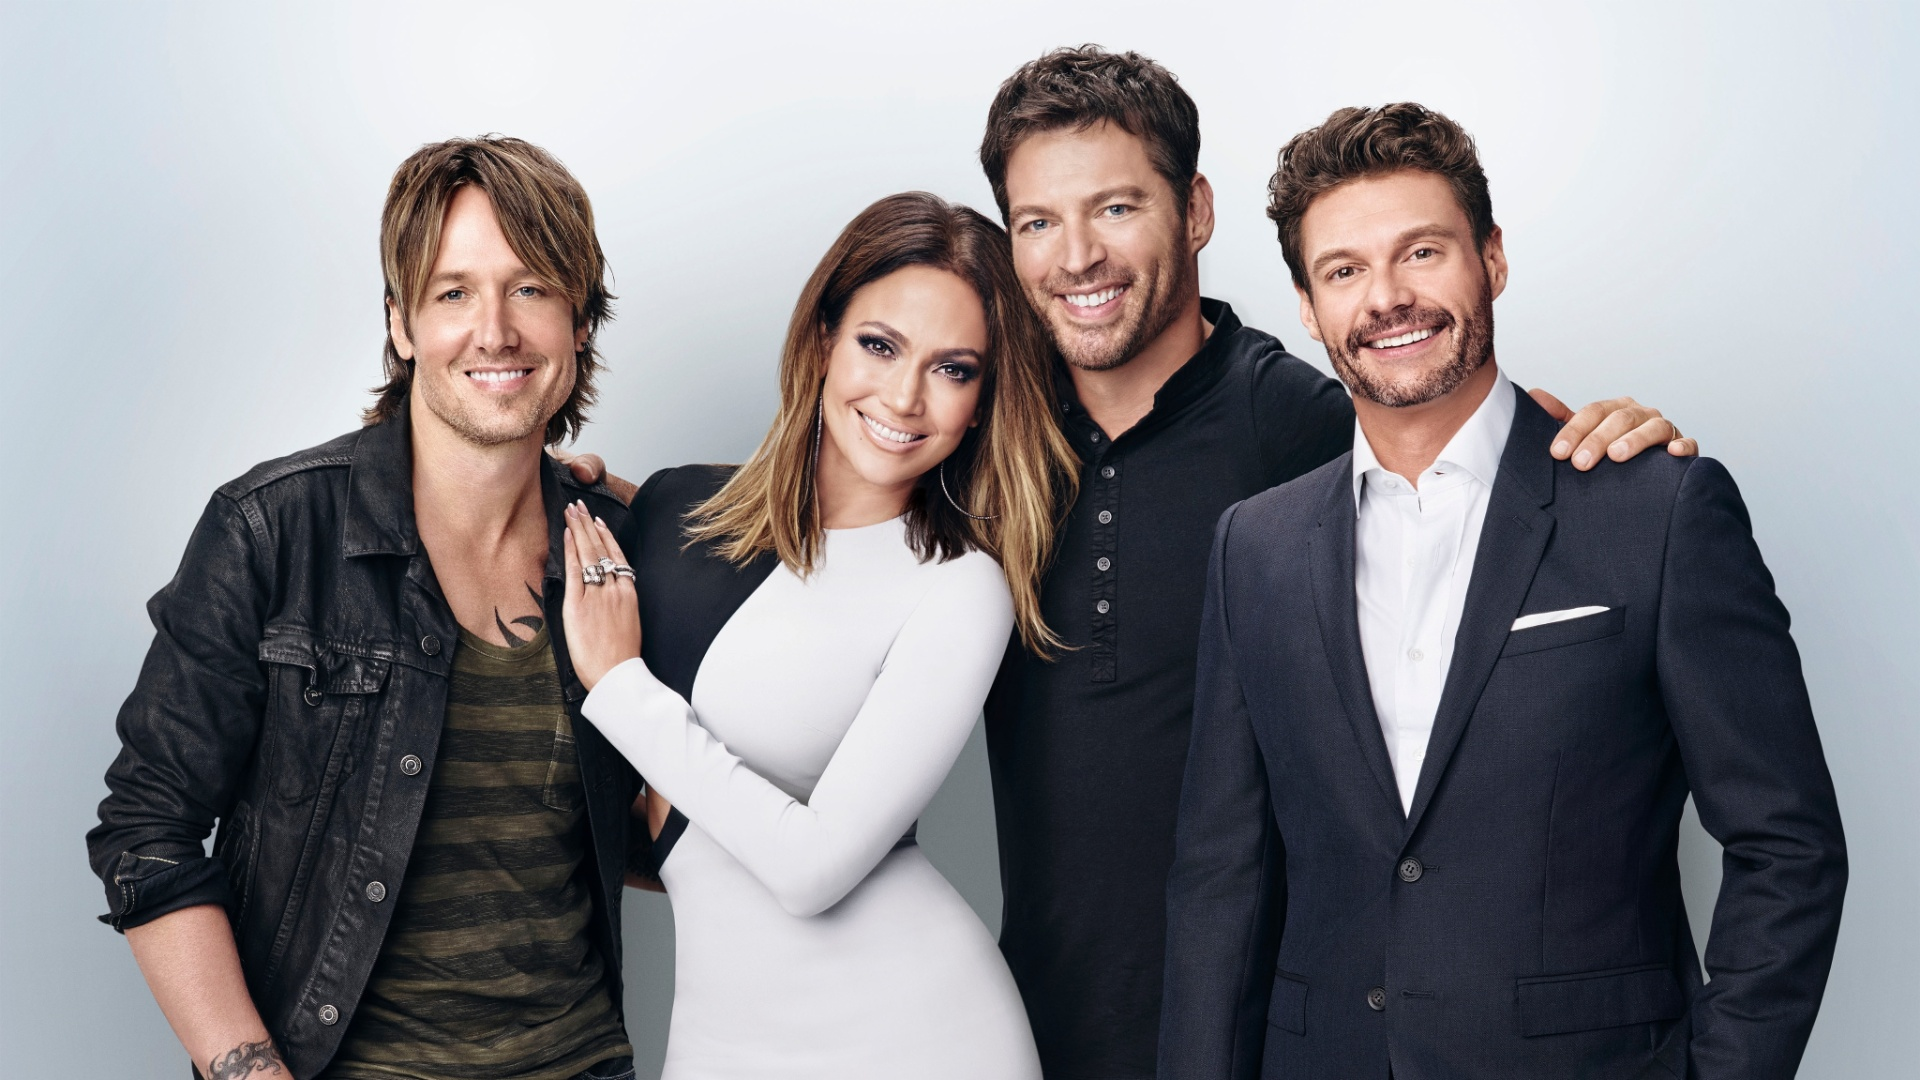 Keith Urban, Jennifer Lopez, Harry Connick Jr. e Ryan Seacrest estão na última temporada do